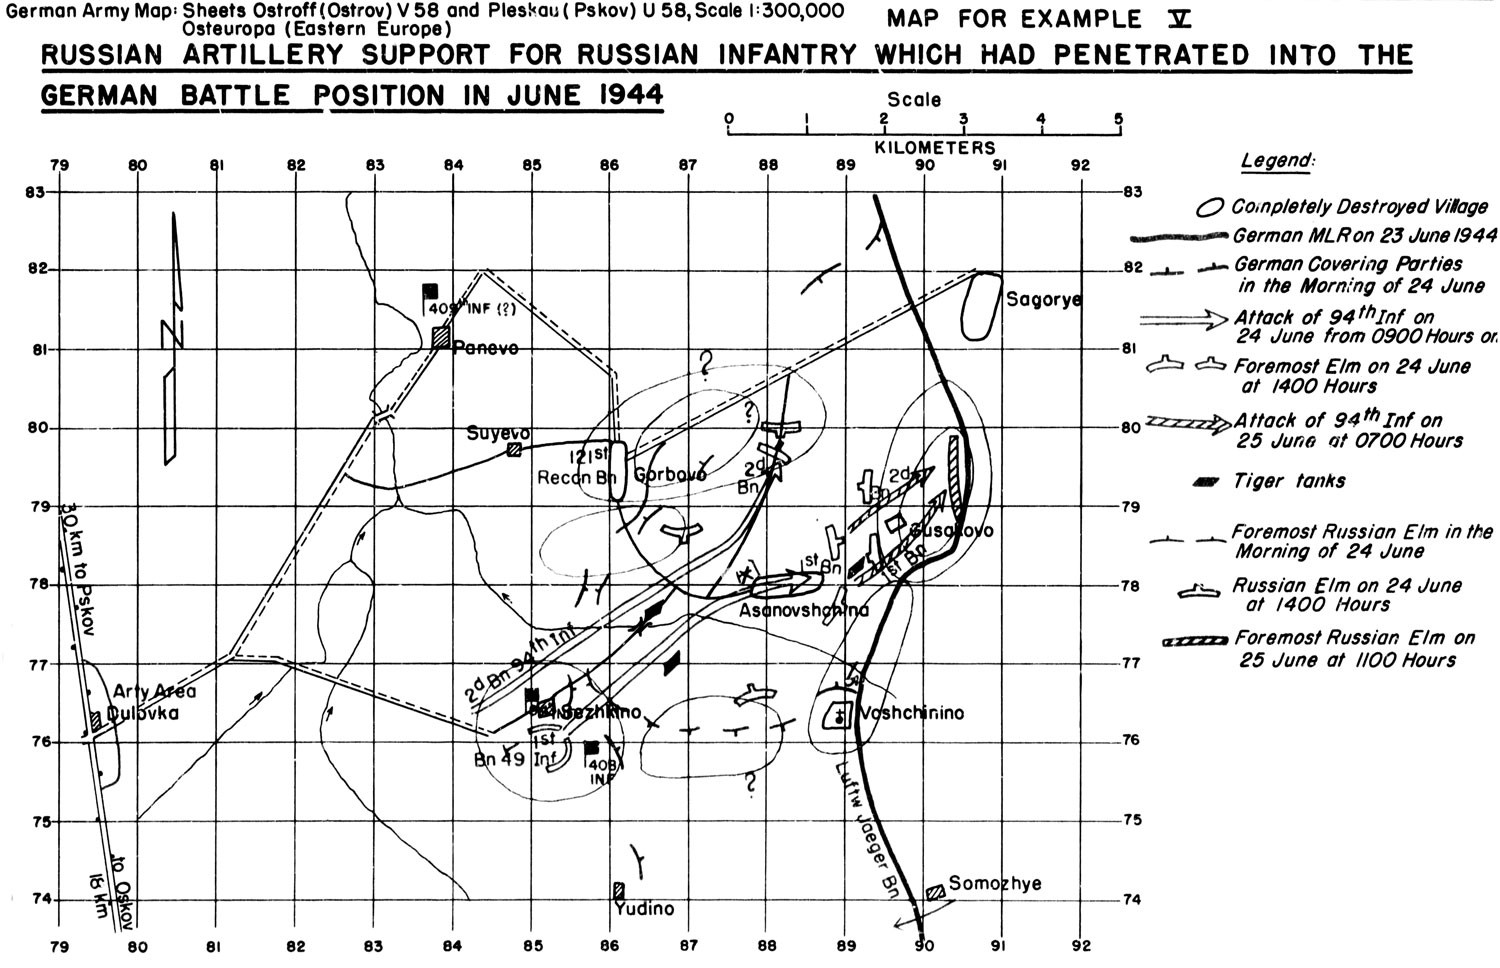 hight resolution of example v russian artillery support for russian infantry which had penetrated into the german battle position